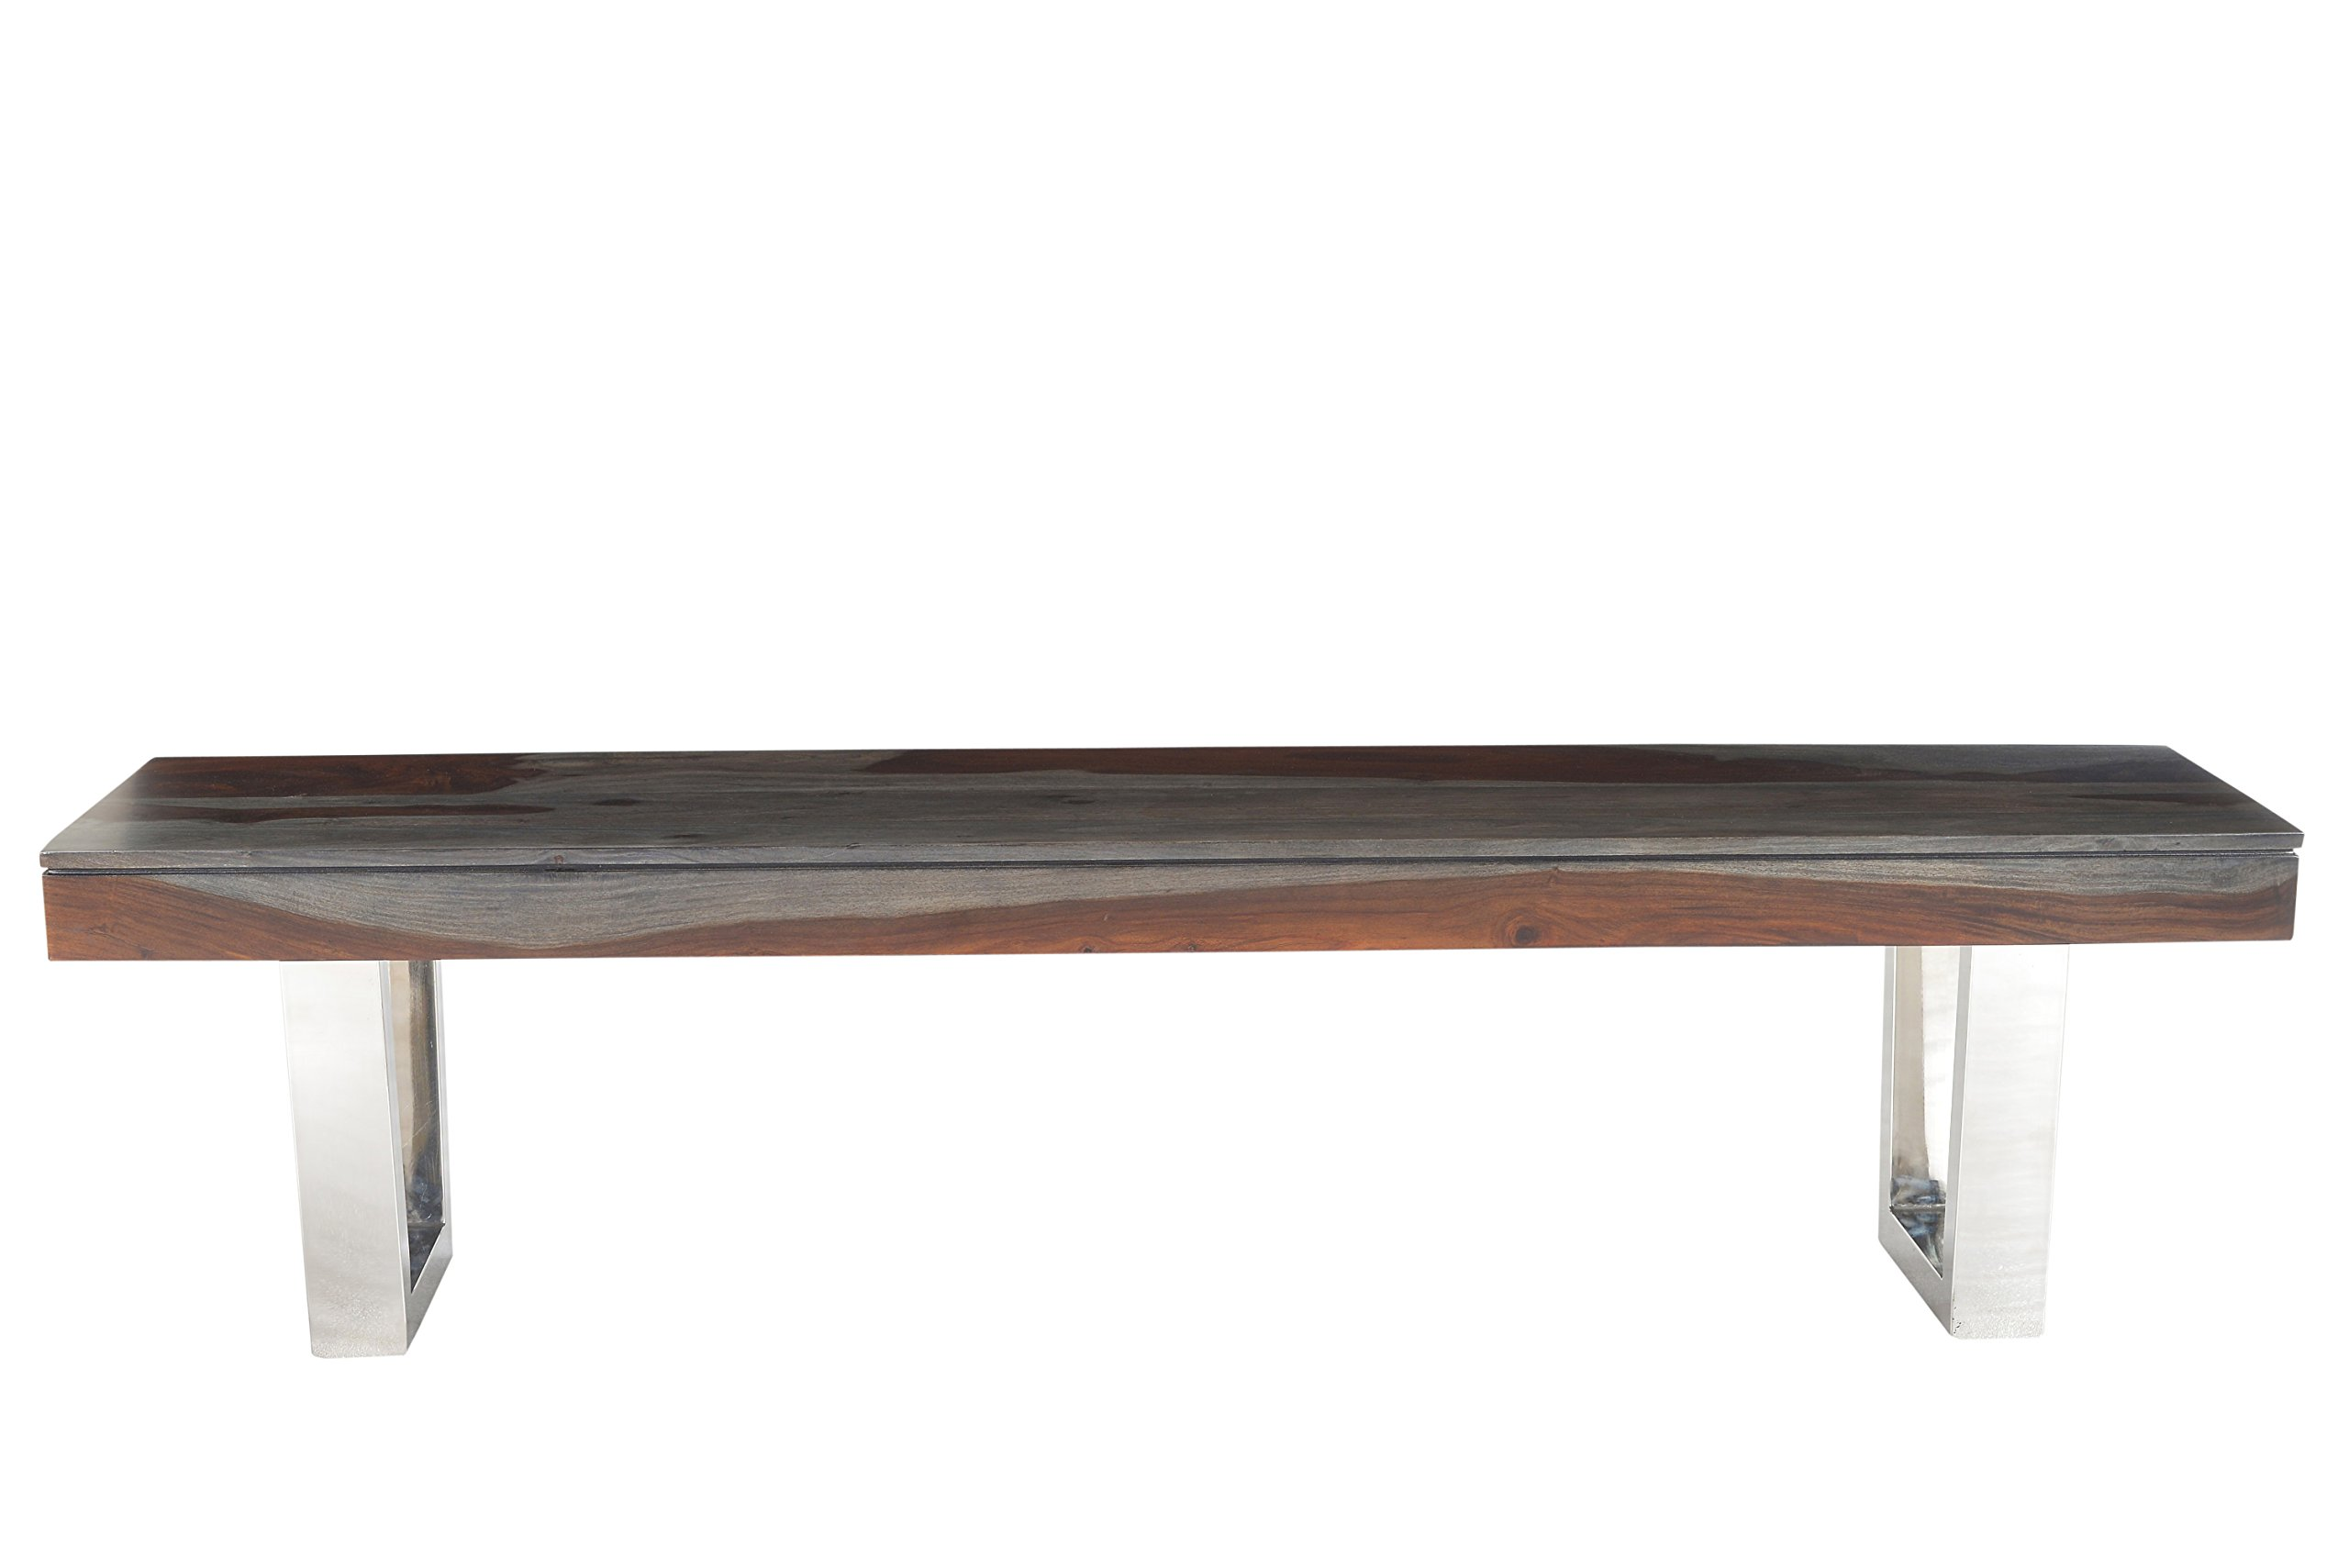 Treasure Trove Stainless Steel Base Grayson Dining Bench, Grey and Red